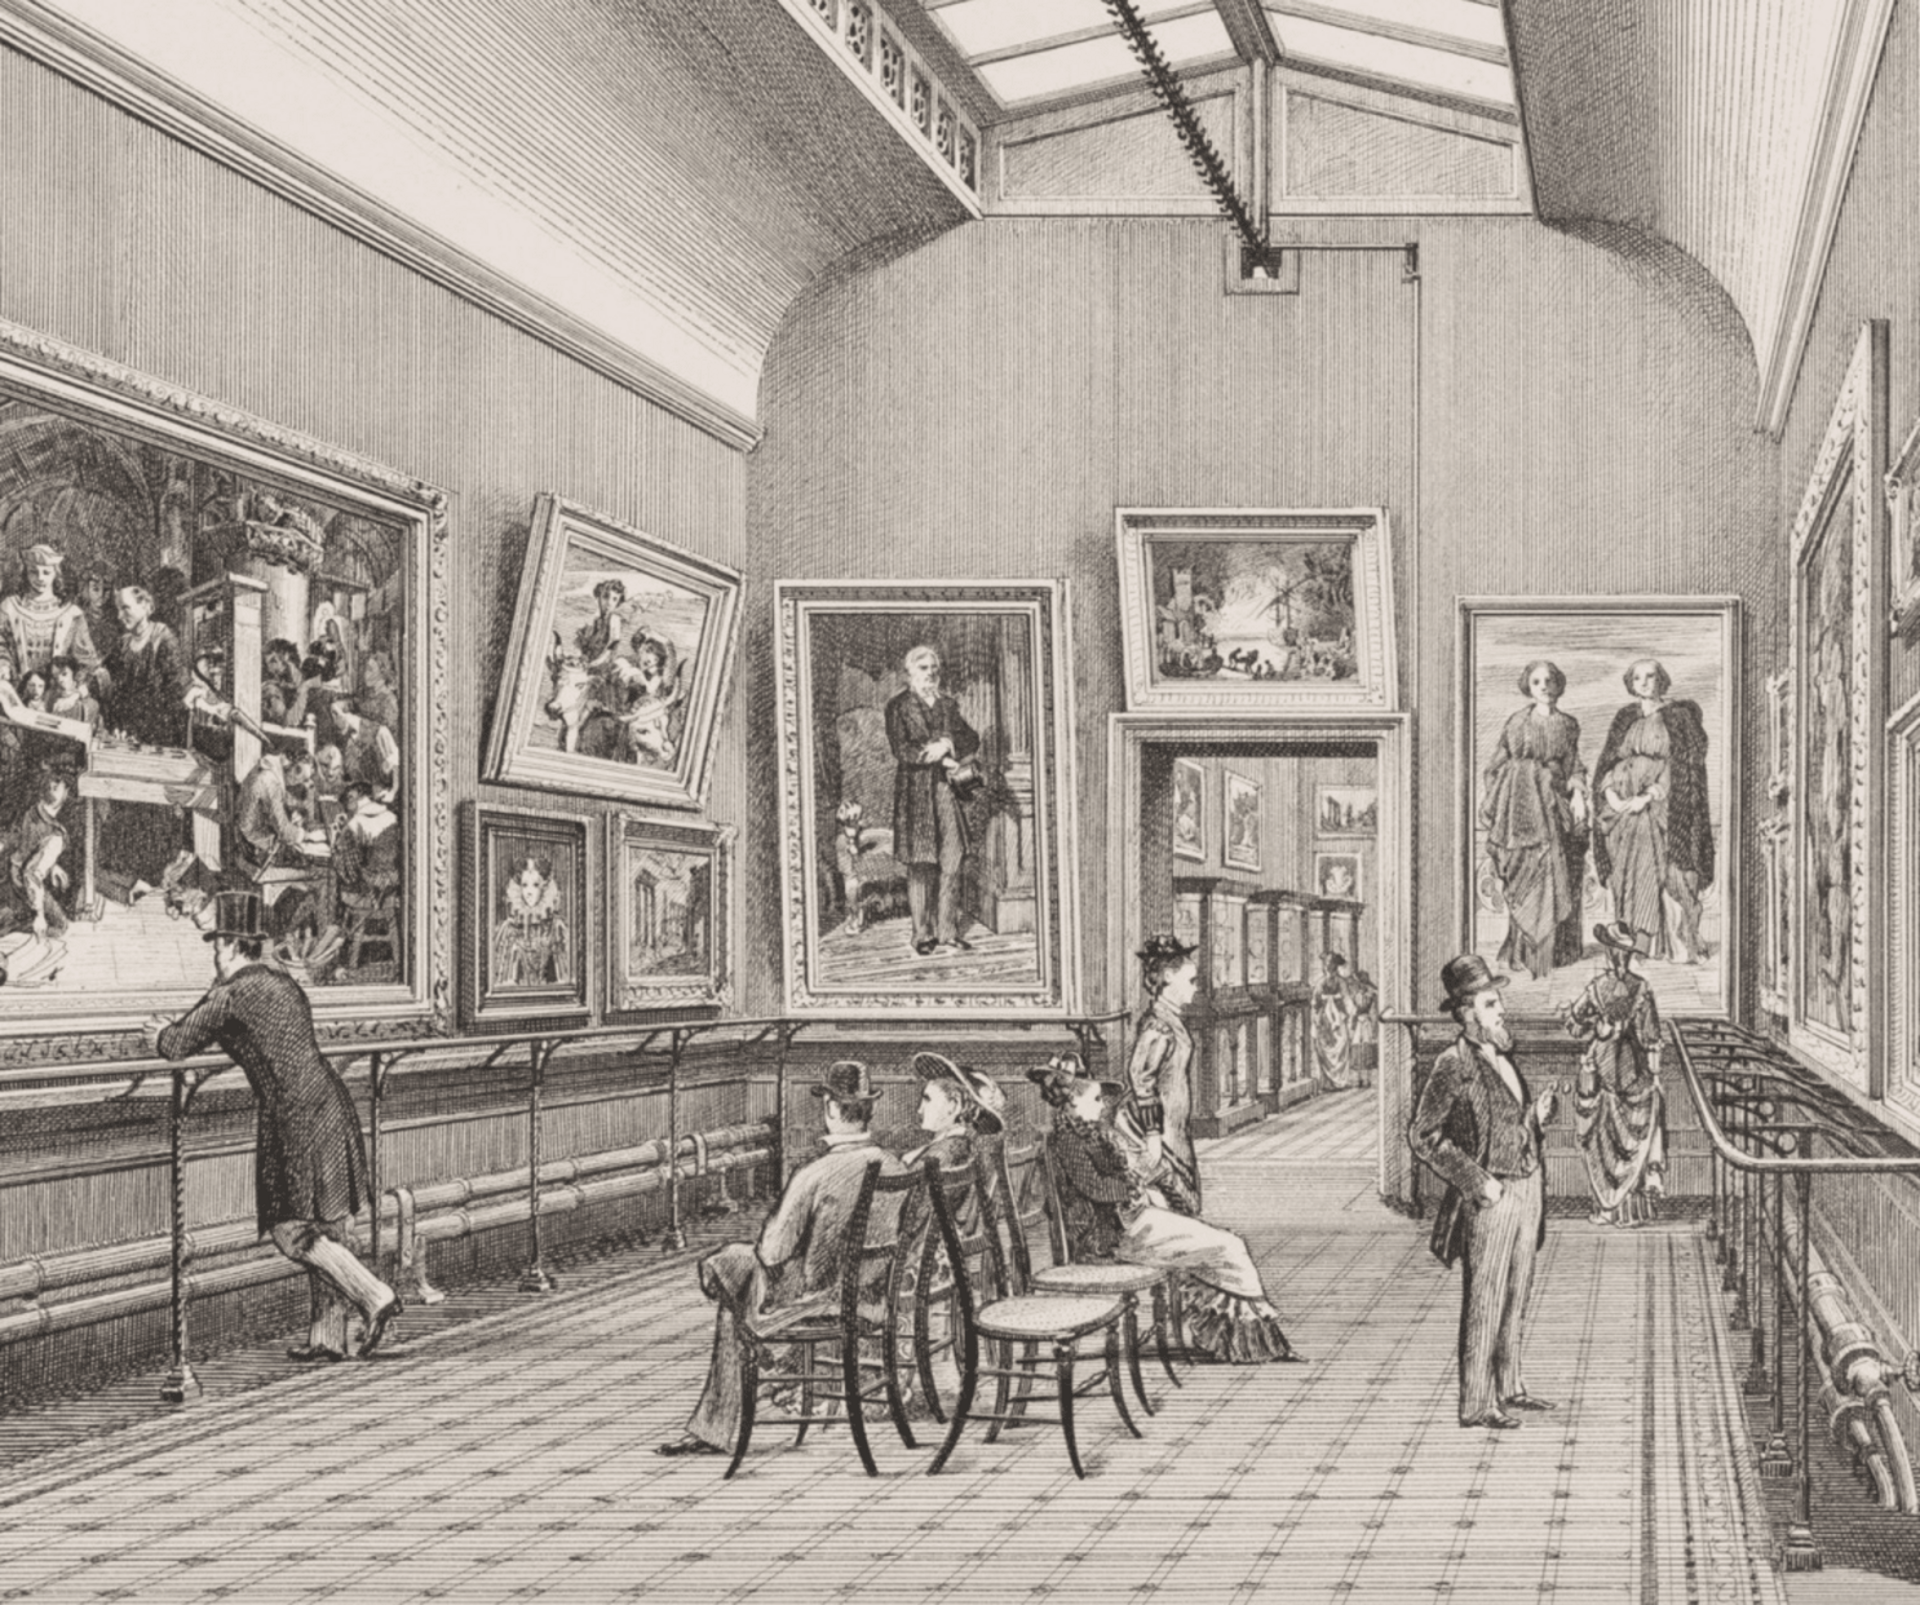 The Nineteenth Century V&A Visitors (Was known as the South Kensington Museum)